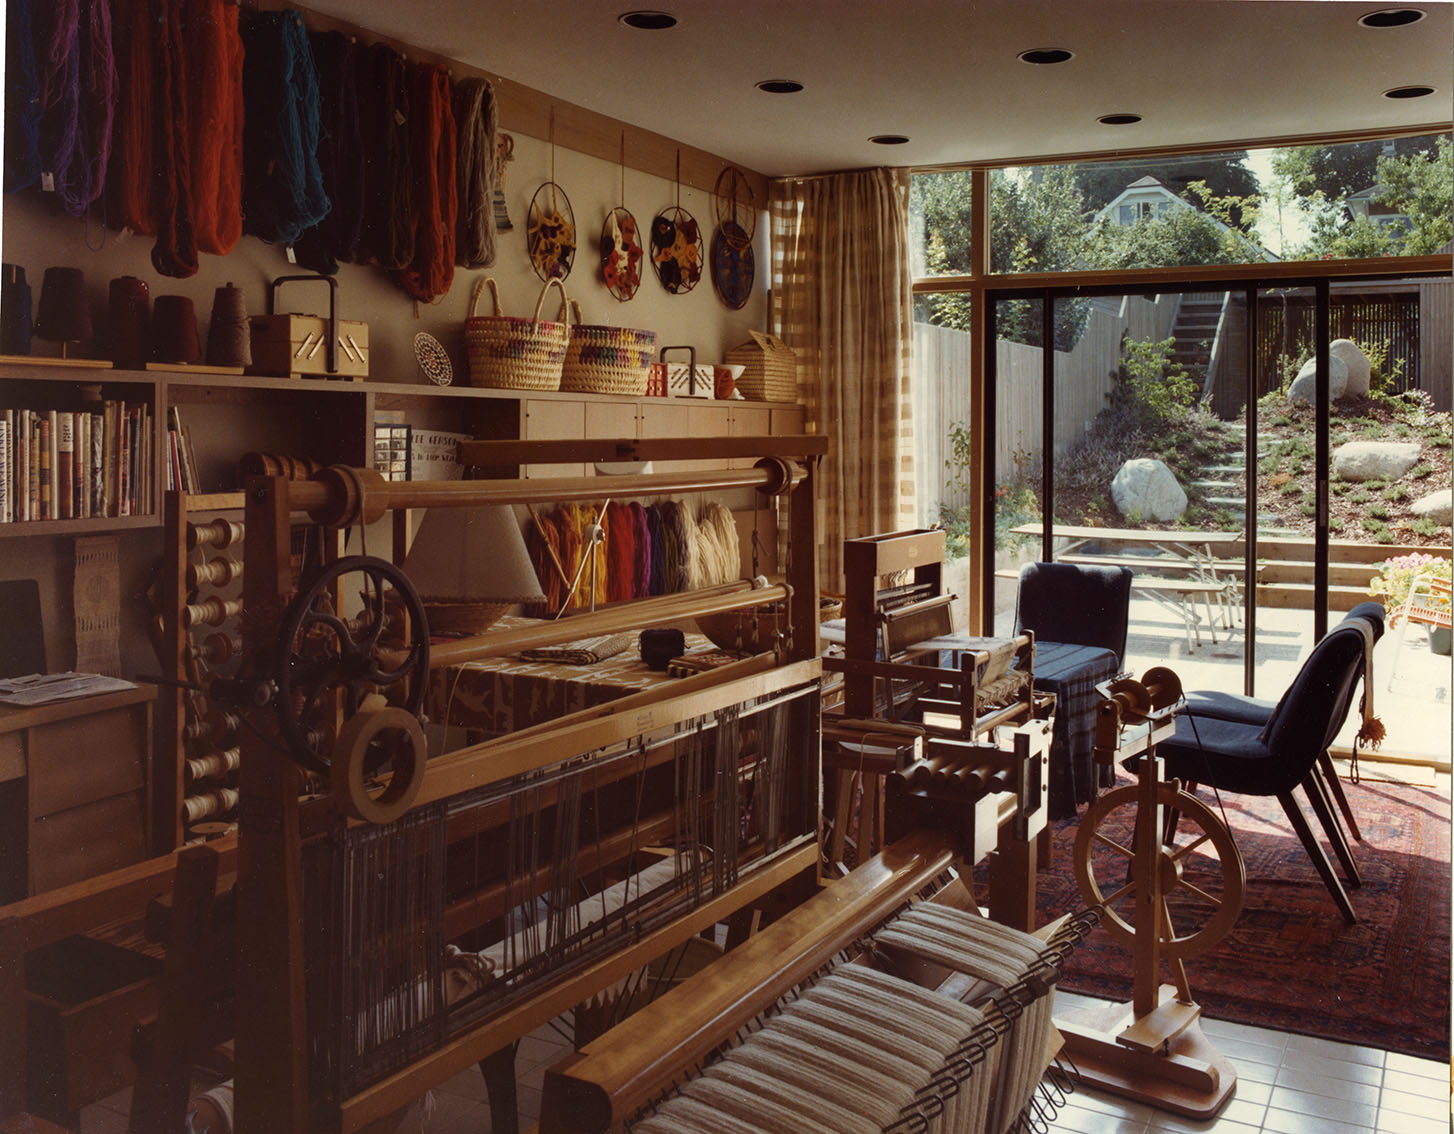 Hilde's weaving studio in the second Gerson House, 1977. Photo courtesy of the Gerson family.